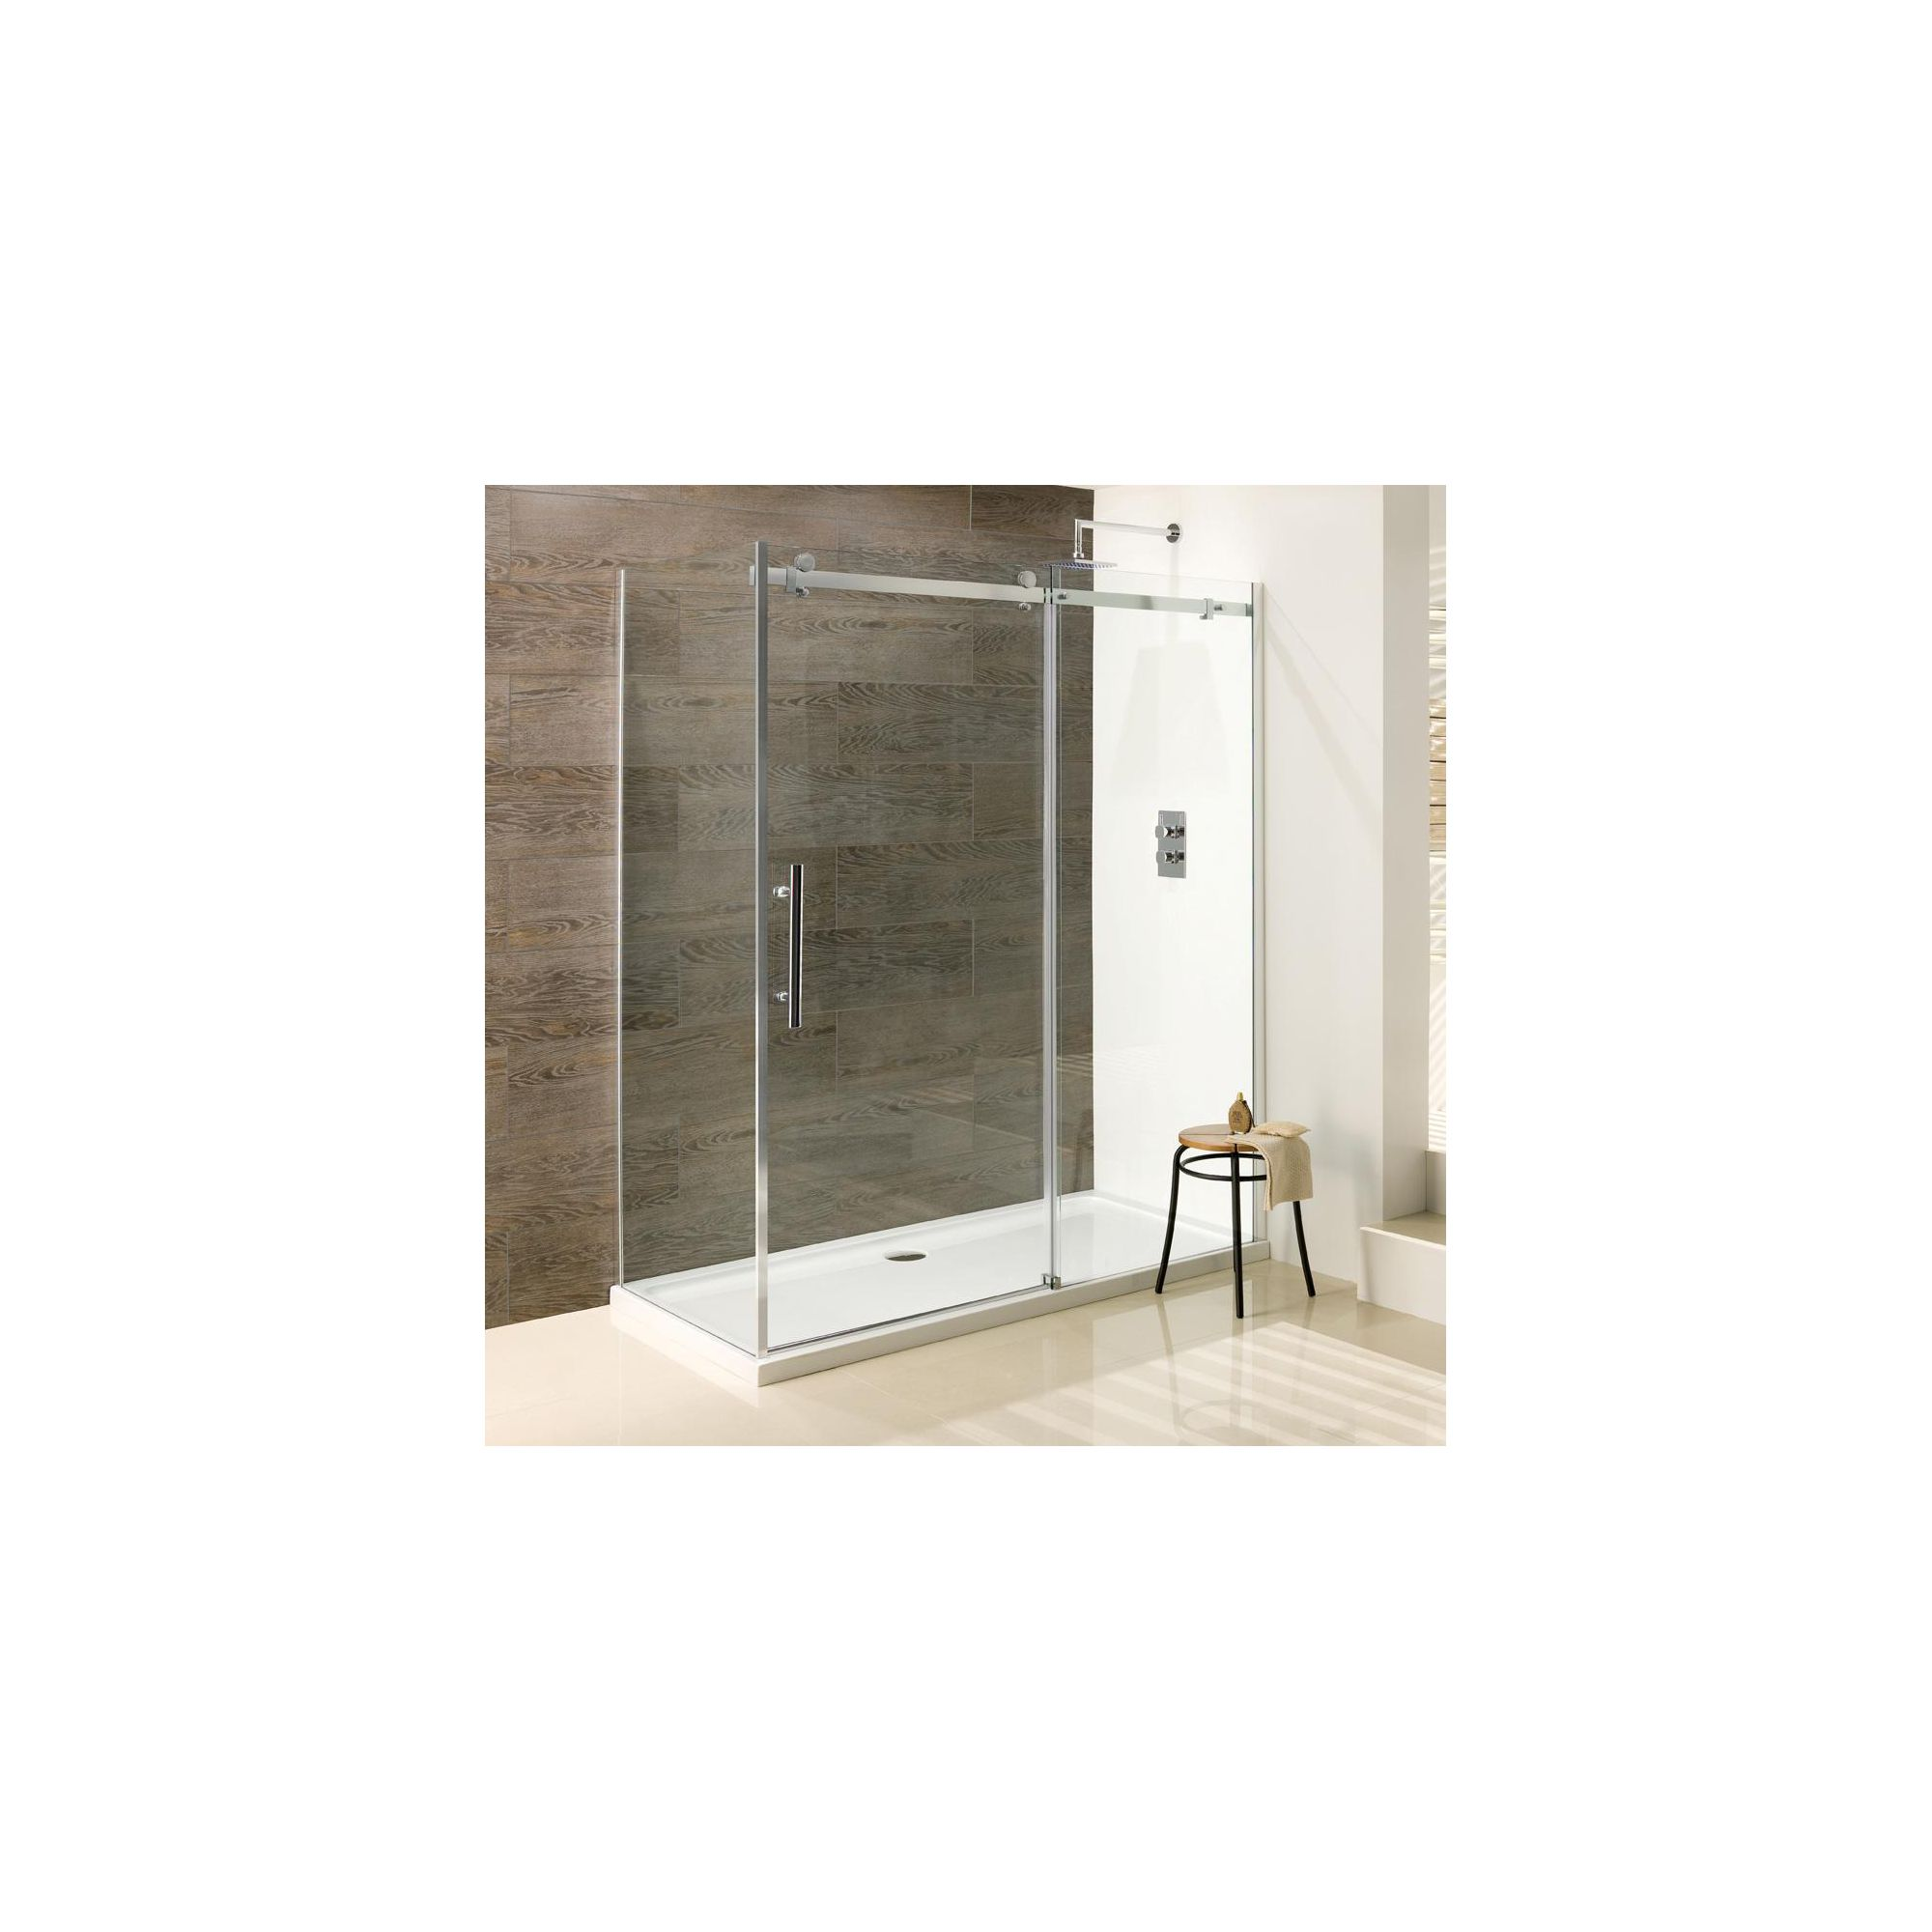 Duchy Deluxe Silver Sliding Door Shower Enclosure with Side Panel 1600mm x 900mm (Complete with Tray), 10mm Glass at Tesco Direct